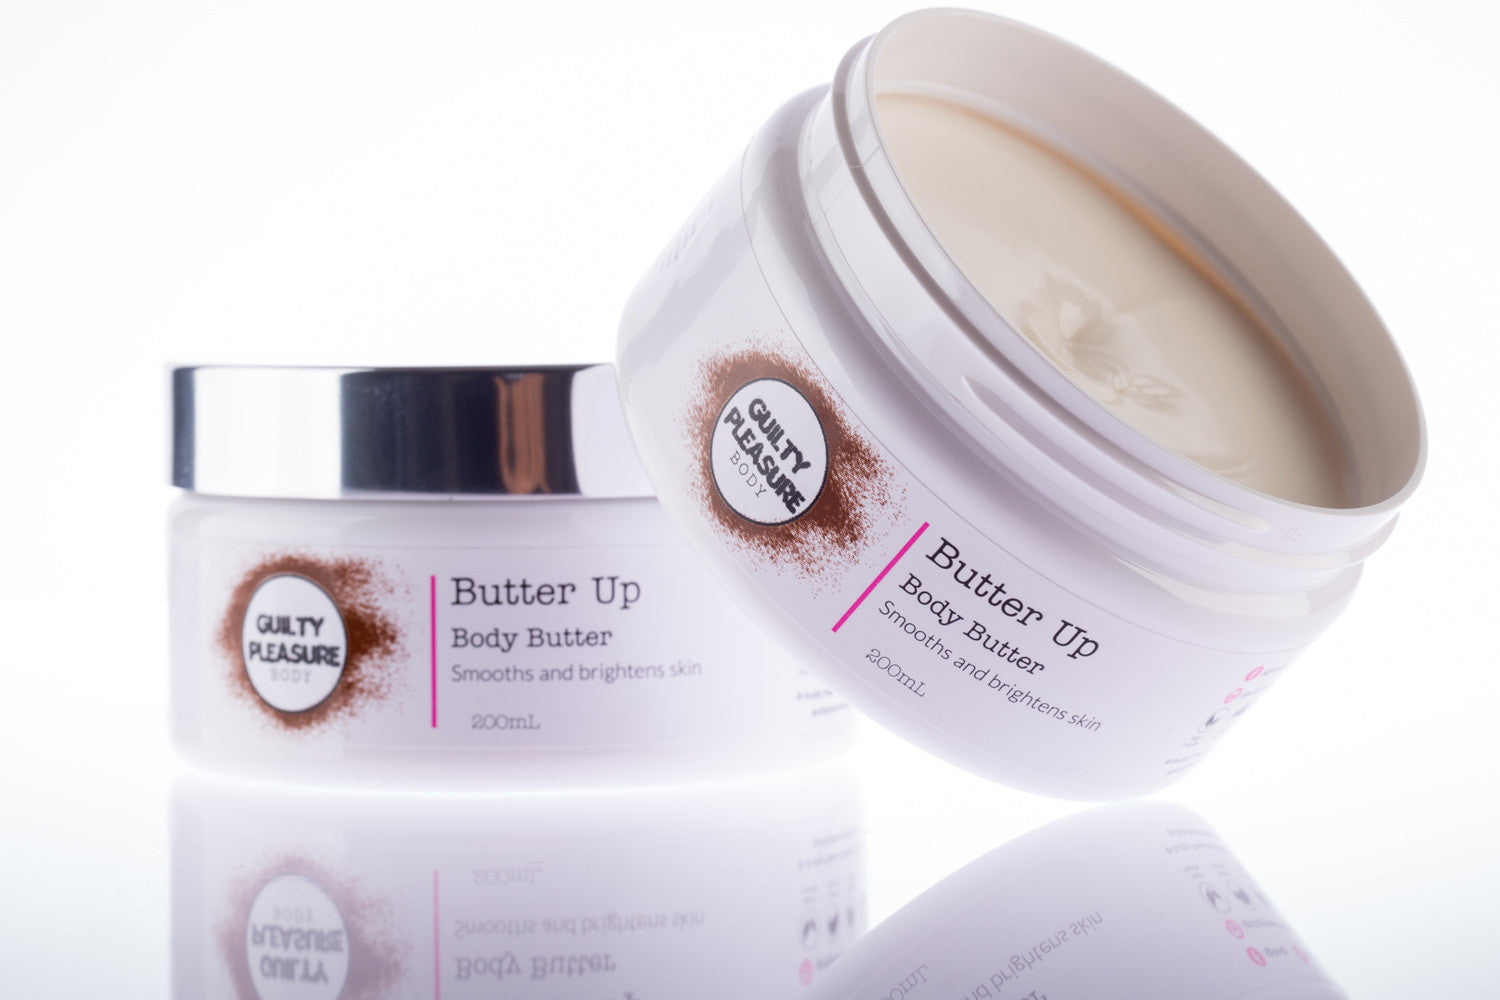 Butter Up; Body Butter